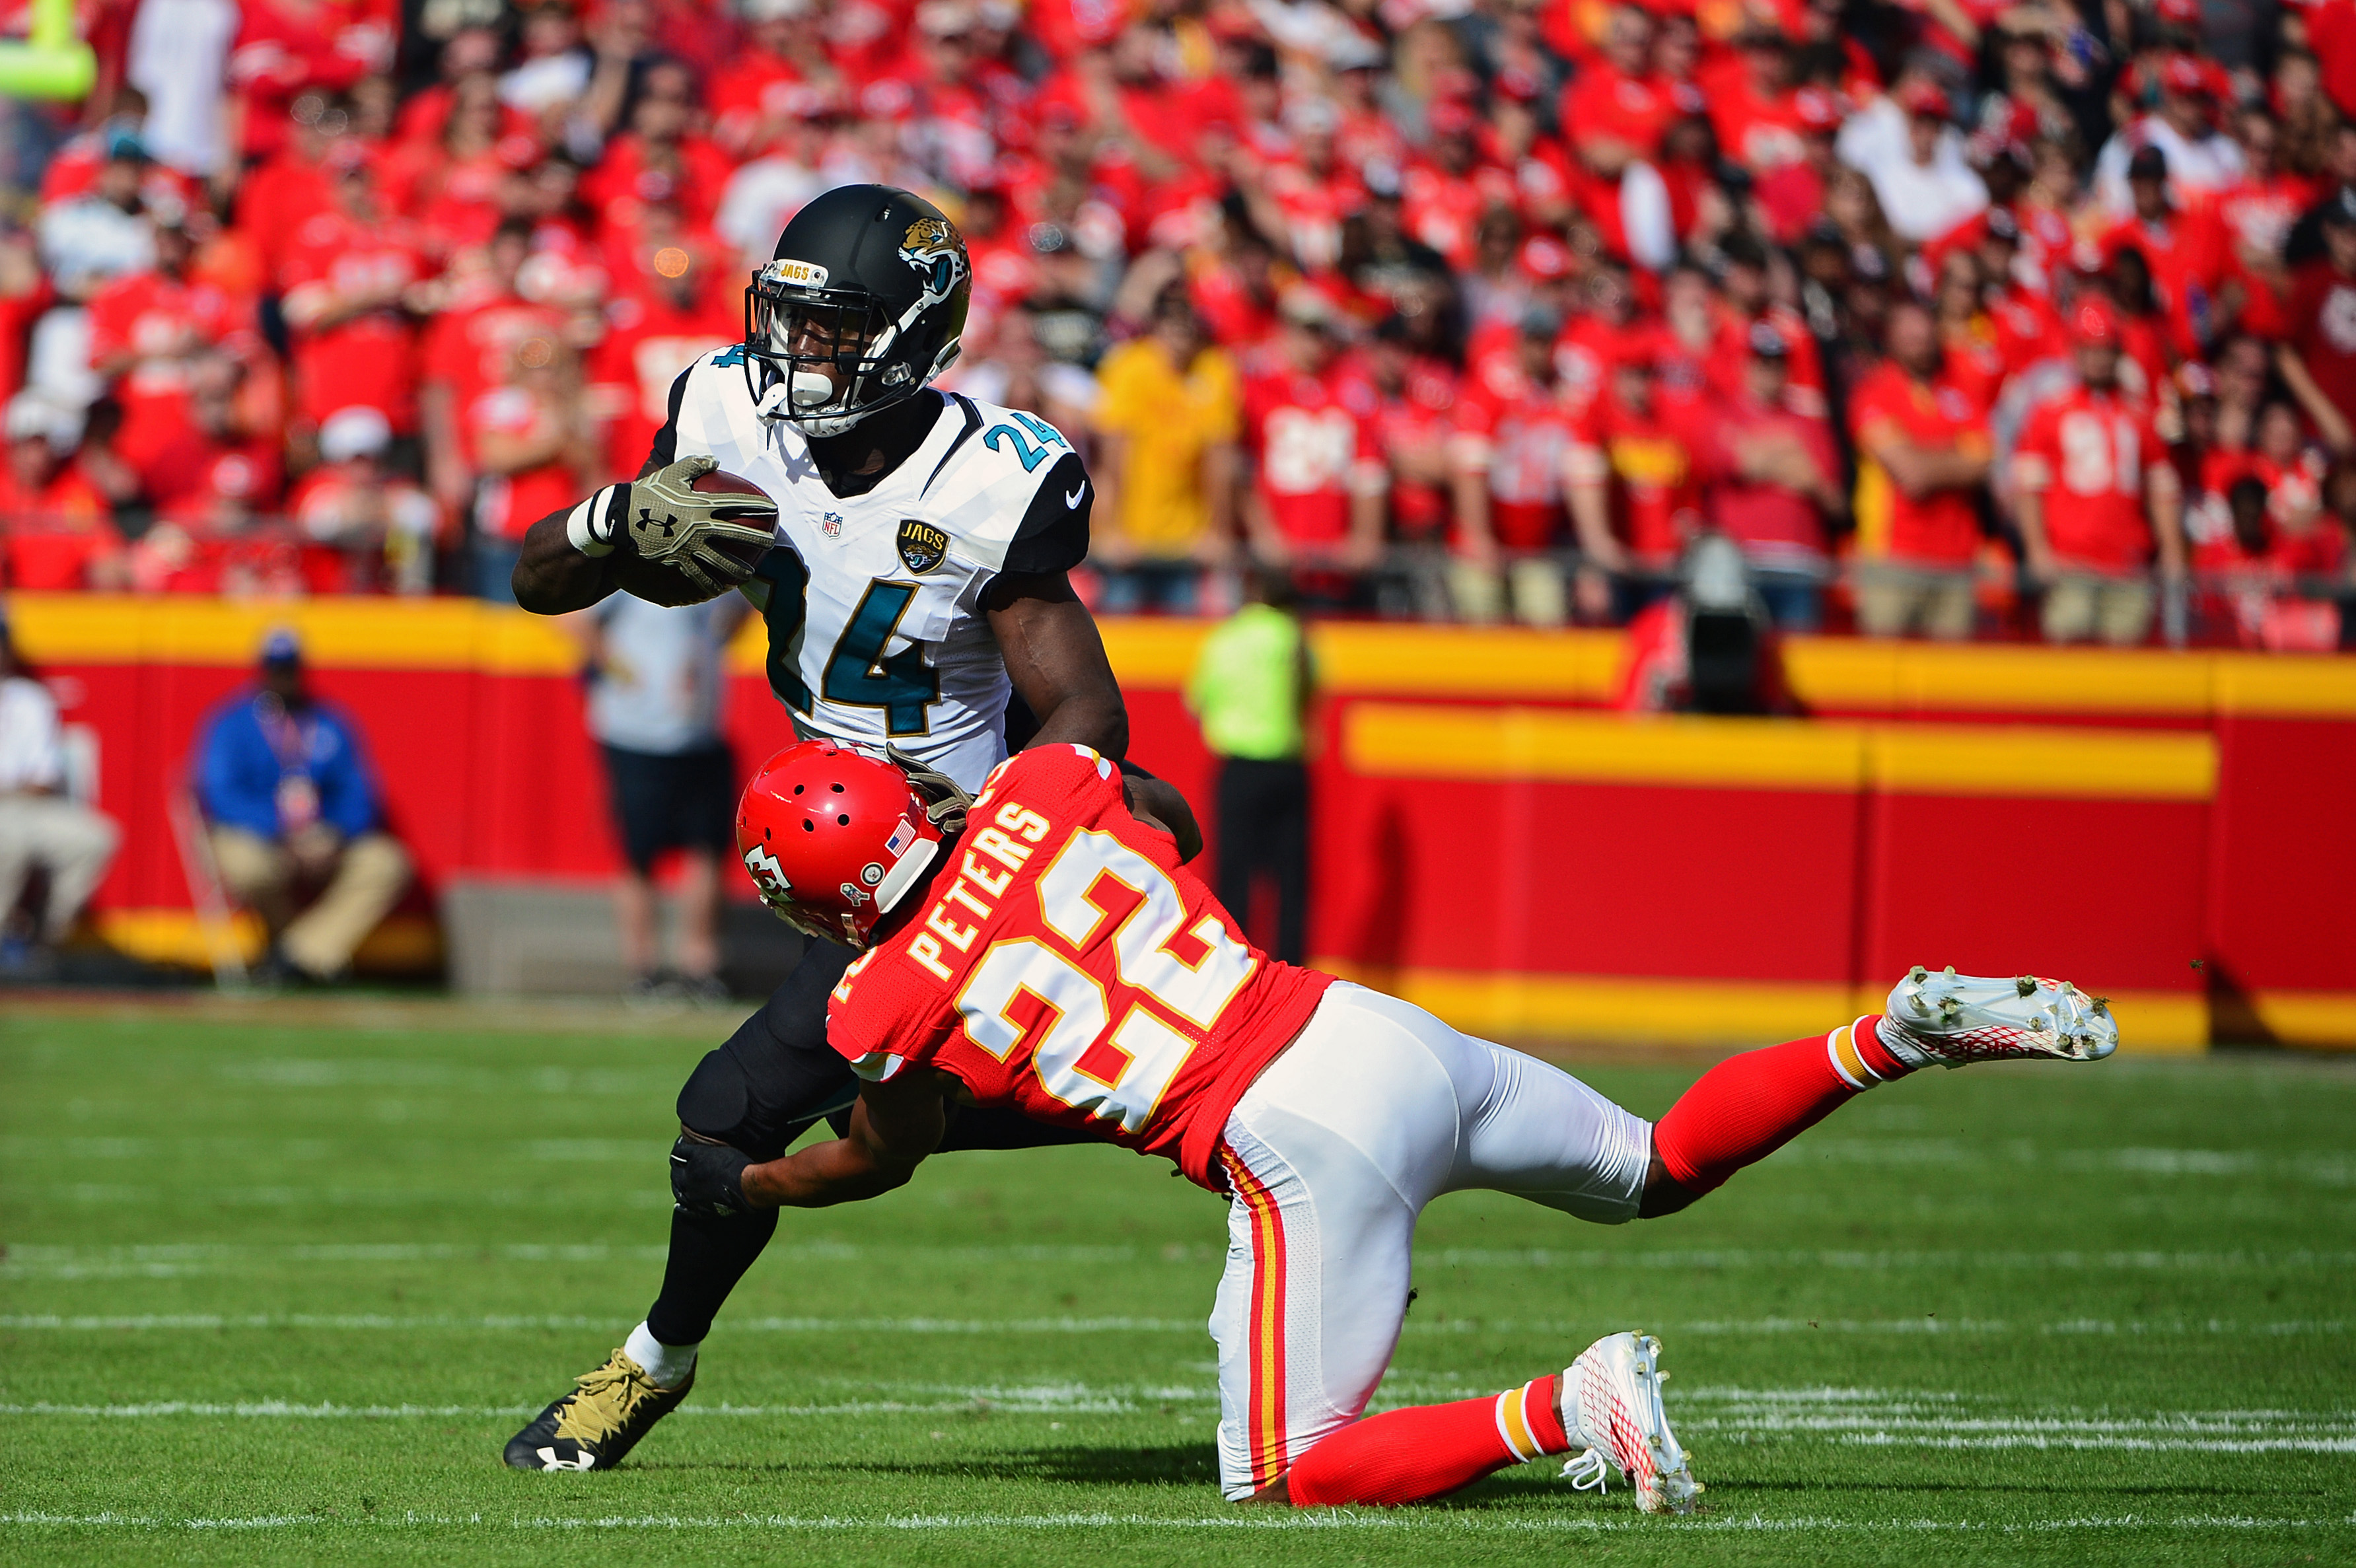 Nov 6, 2016; Kansas City, MO, USA; Jacksonville Jaguars running back T.J. Yeldon (24) is tackled by Kansas City Chiefs cornerback Marcus Peters (22) during the first half at Arrowhead Stadium. Mandatory Credit: Jeff Curry-USA TODAY Sports